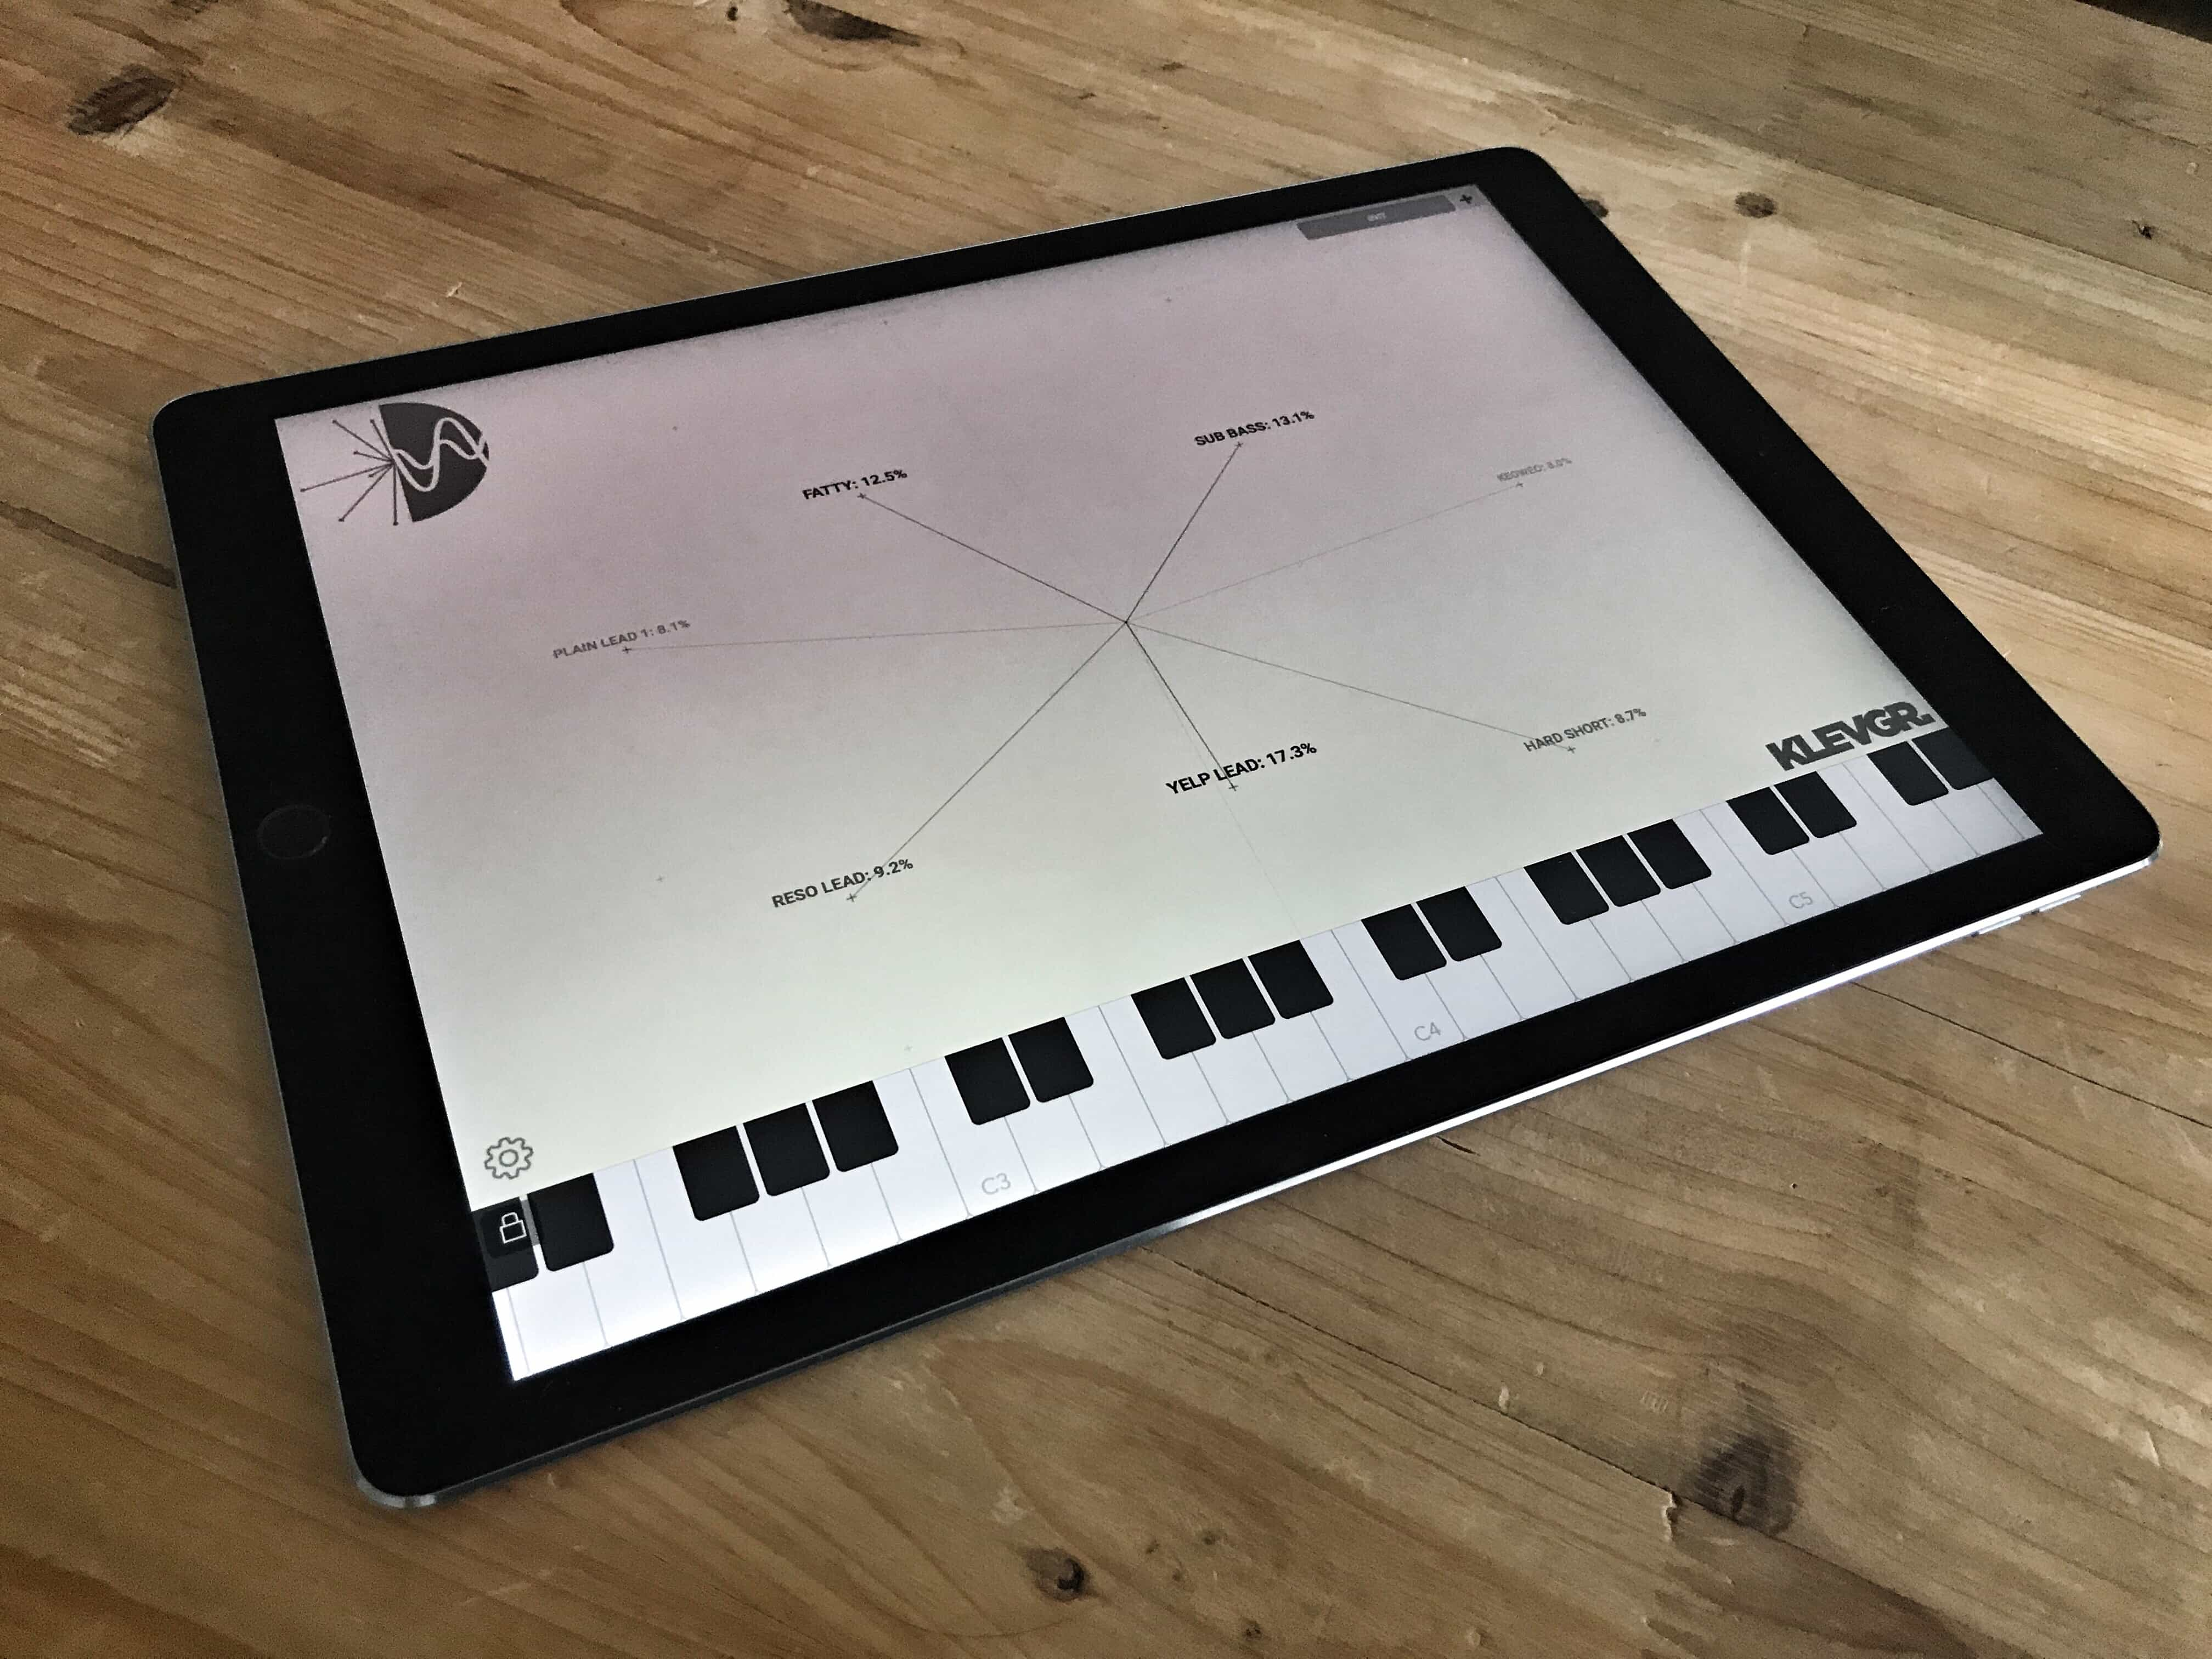 SyndtSphere iPad synth